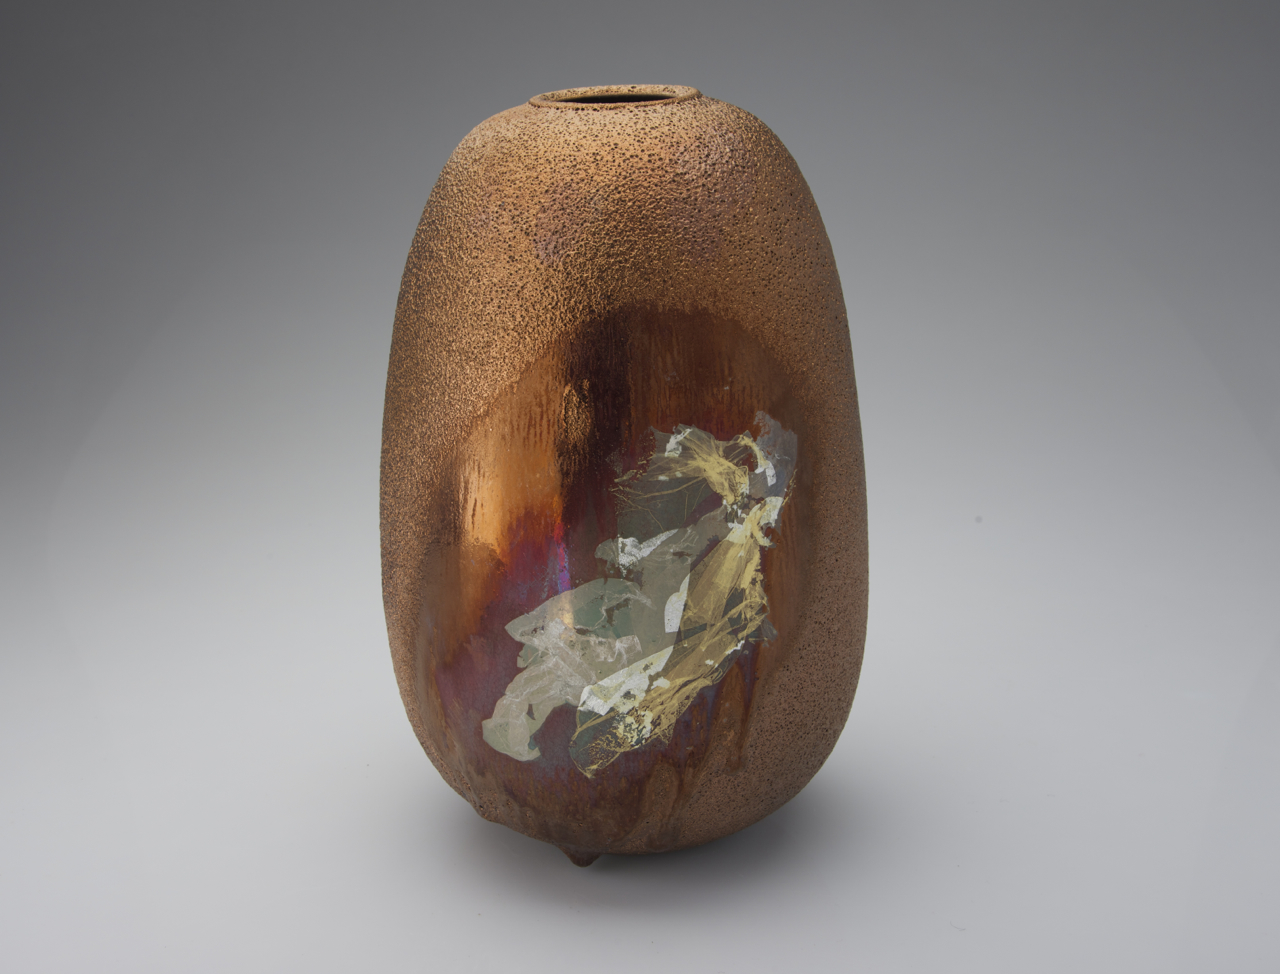 8. Parched Earth series, 290 mm H x 180 mm D, $1,600